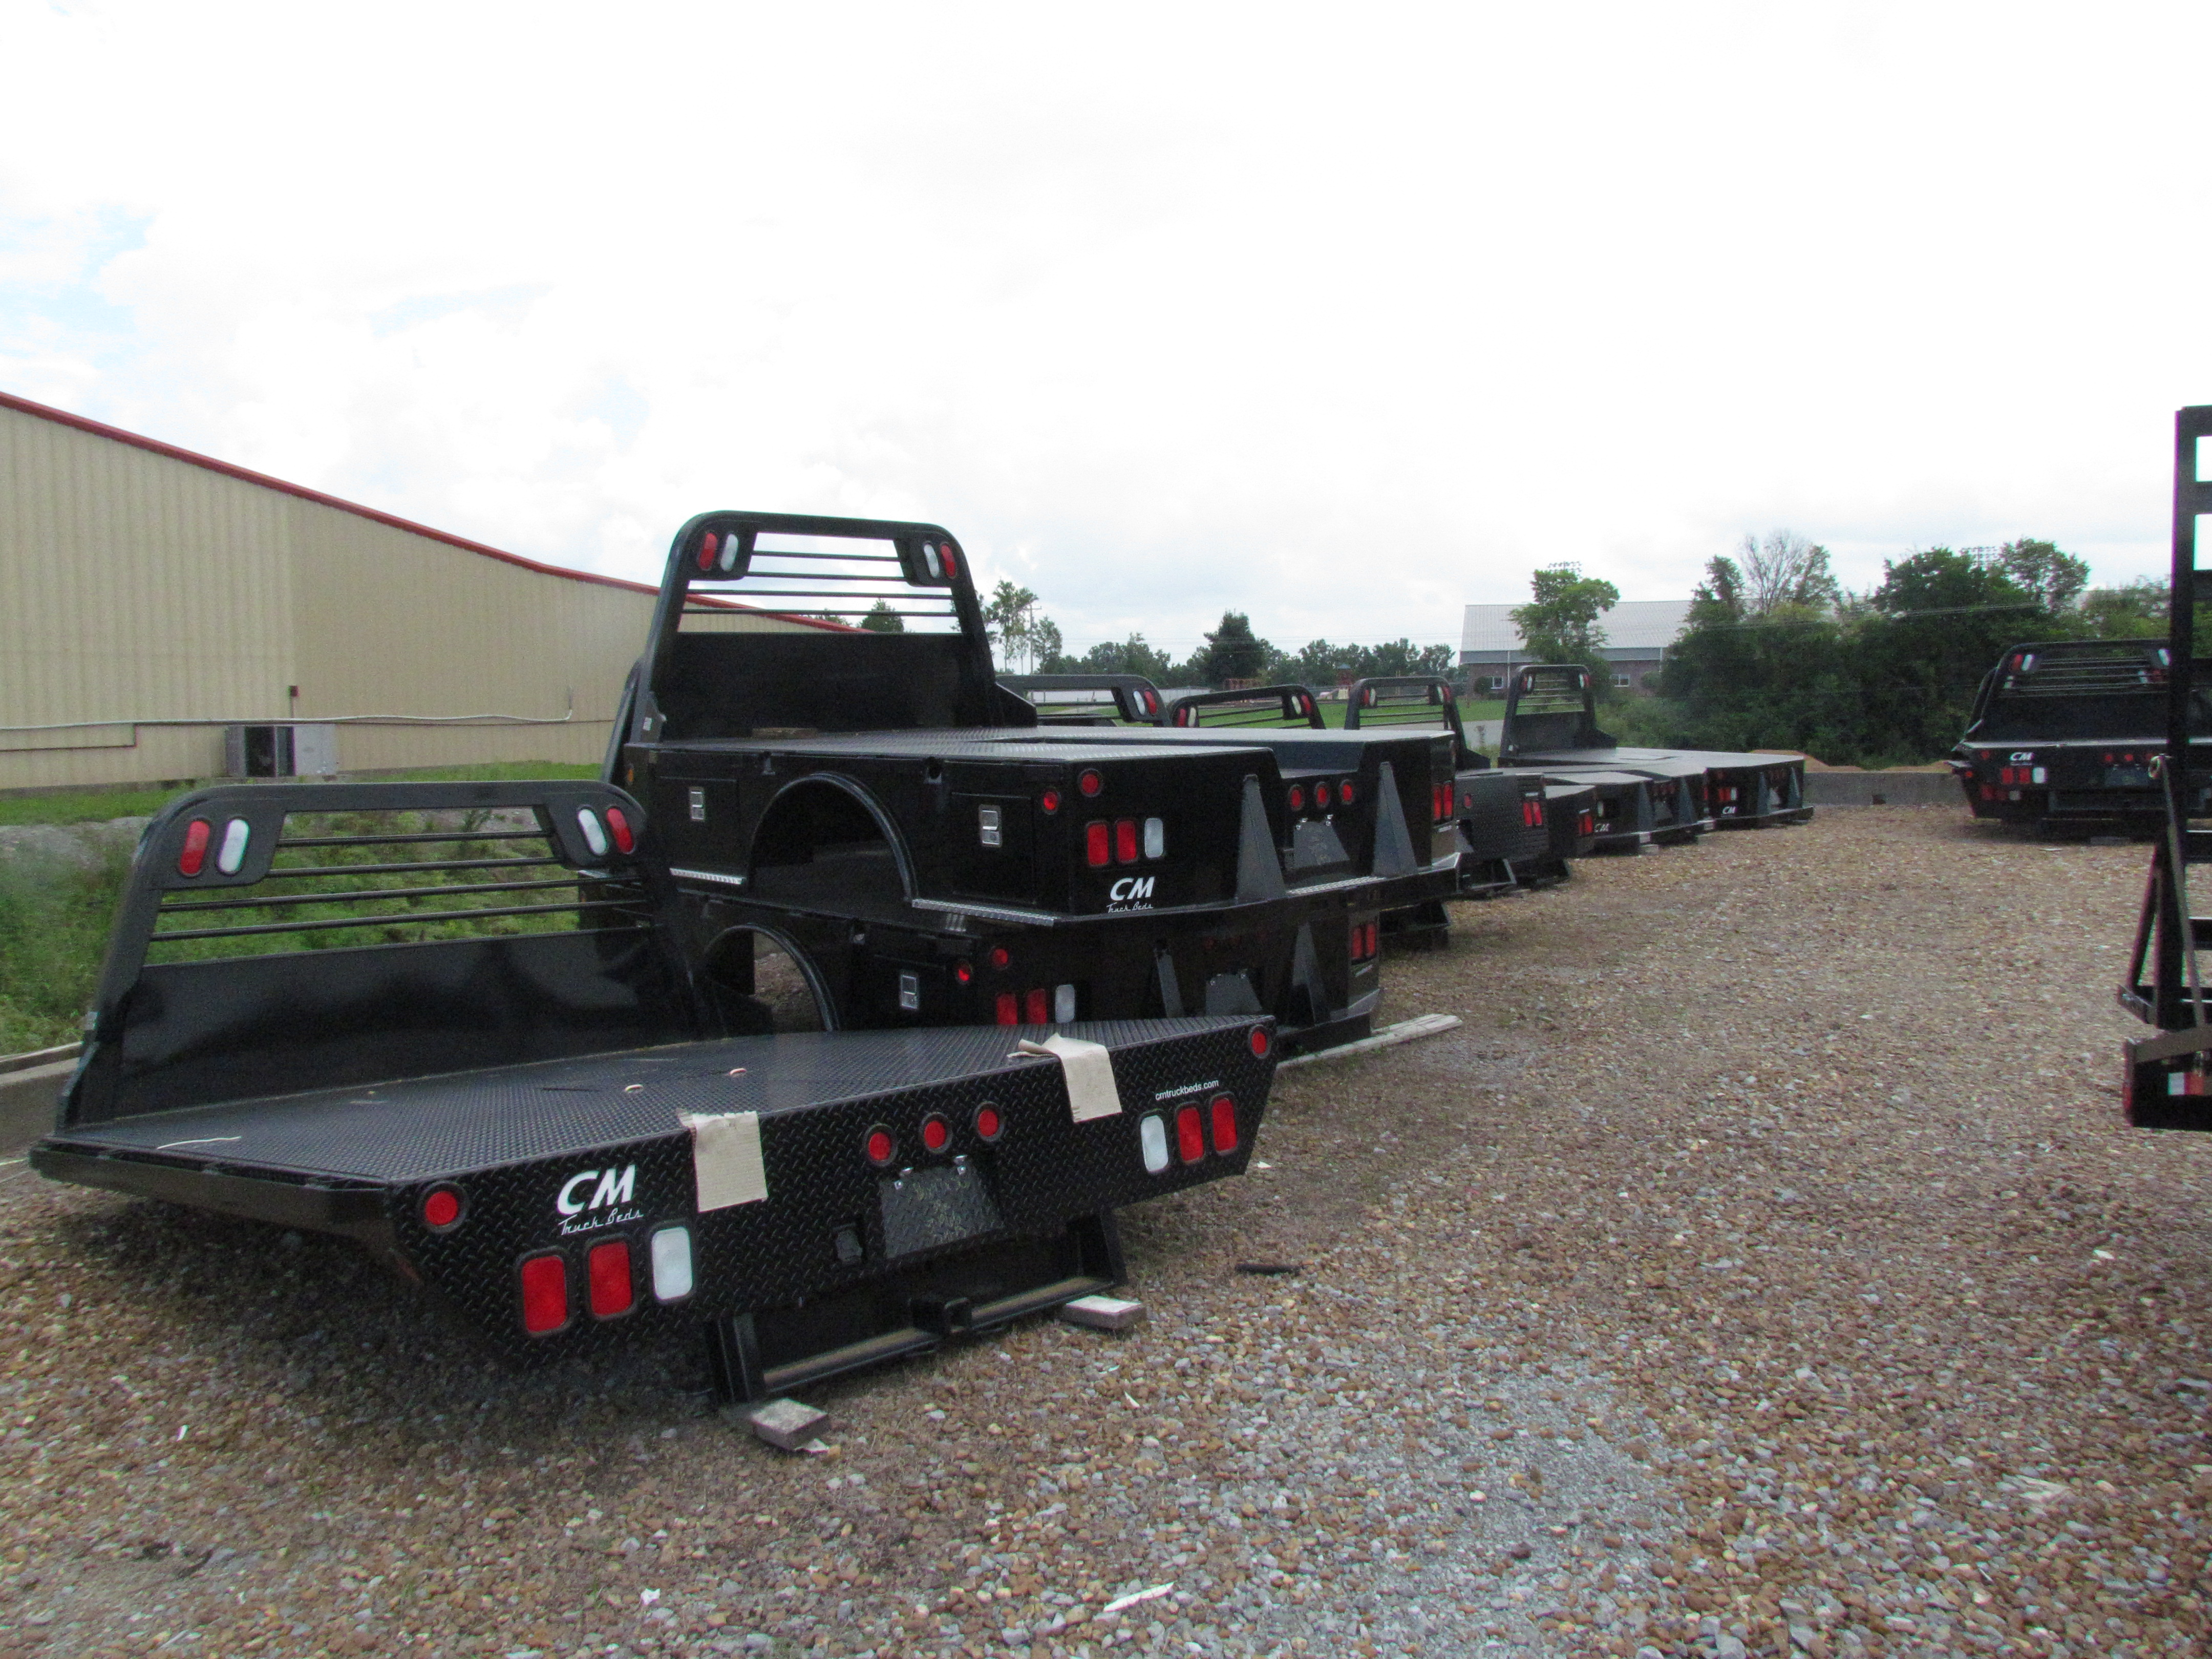 truck beds flatbed and dump trailers for sale at wholesale trailer and livestock equipment. Black Bedroom Furniture Sets. Home Design Ideas